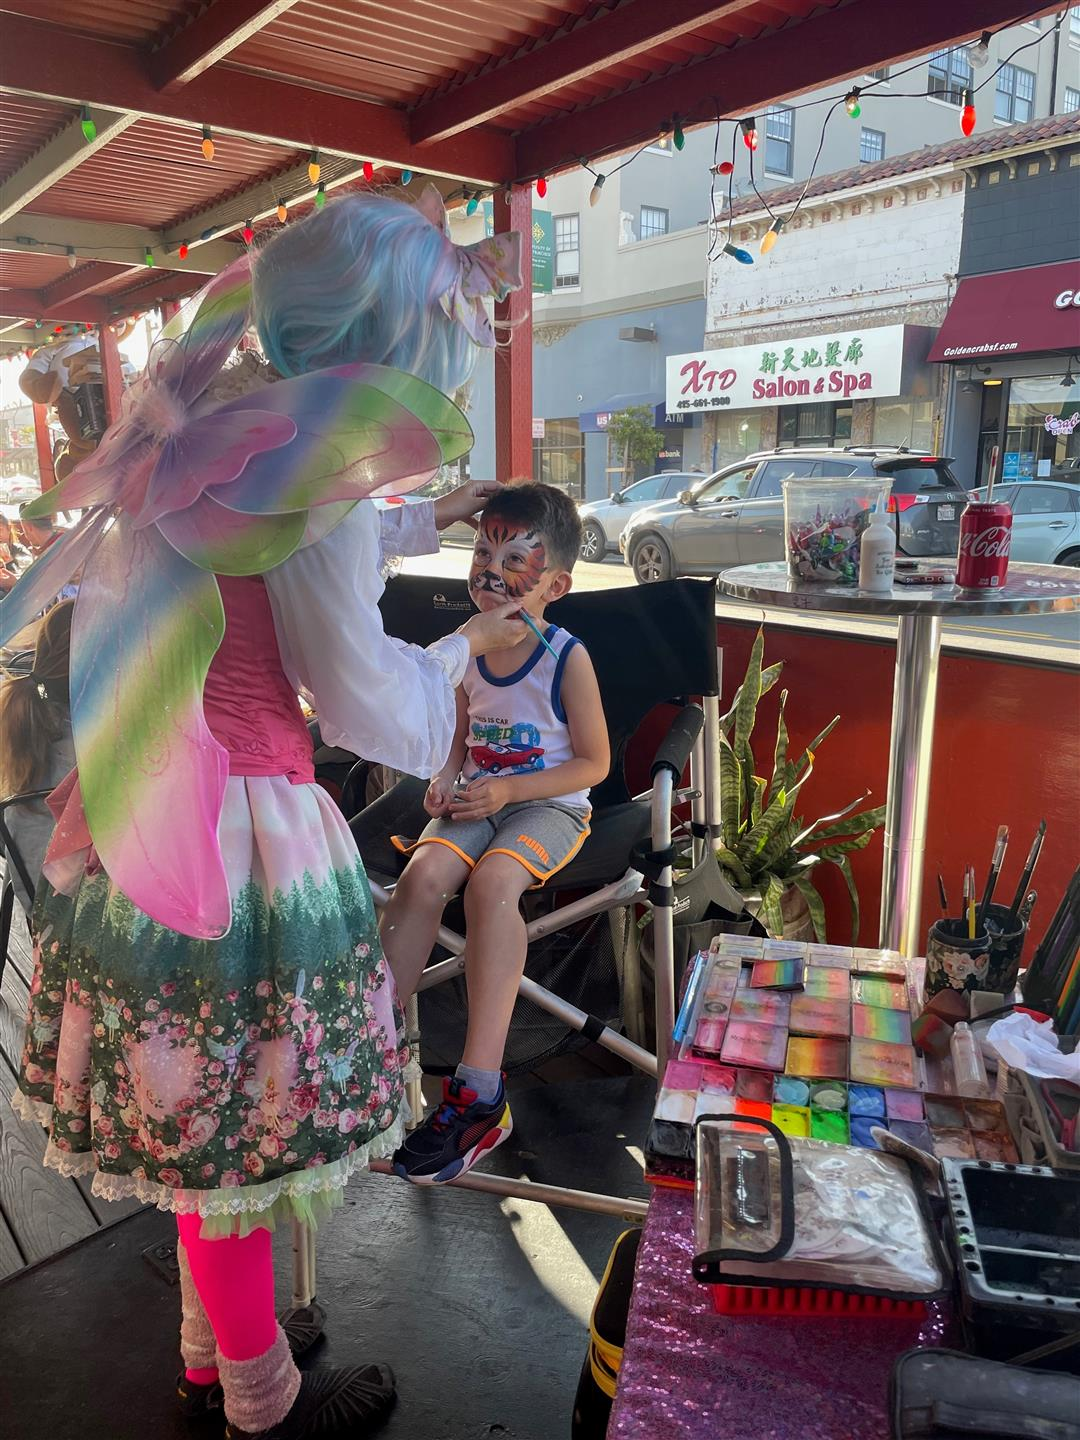 boy sitting down getting his face painted as a tiger from a woman dressed as a fairy